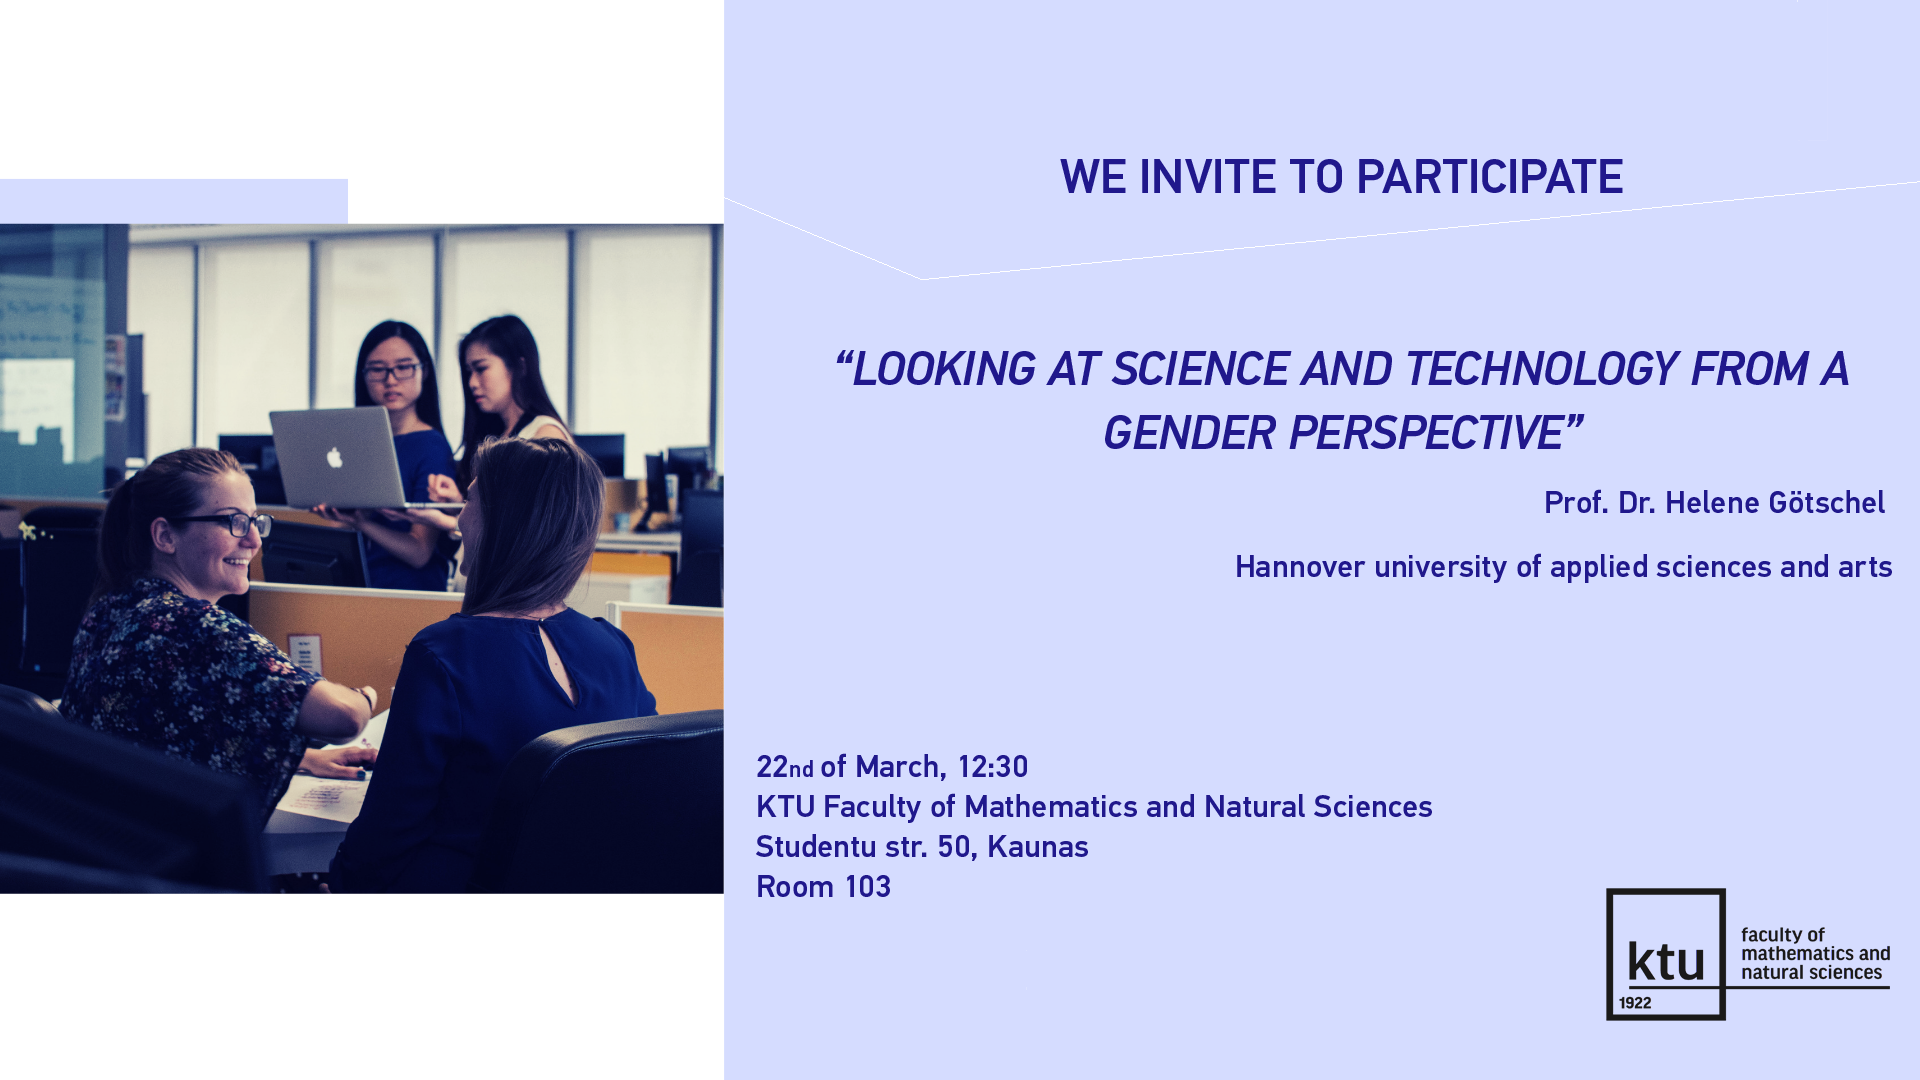 Prof Dr Helene Gotschel Hannover University Of Applied Sciences And Arts Germany Lecture Looking At Science And Technology From A Gender Perspective Faculty Of Mathematics And Natural Sciences Ktu